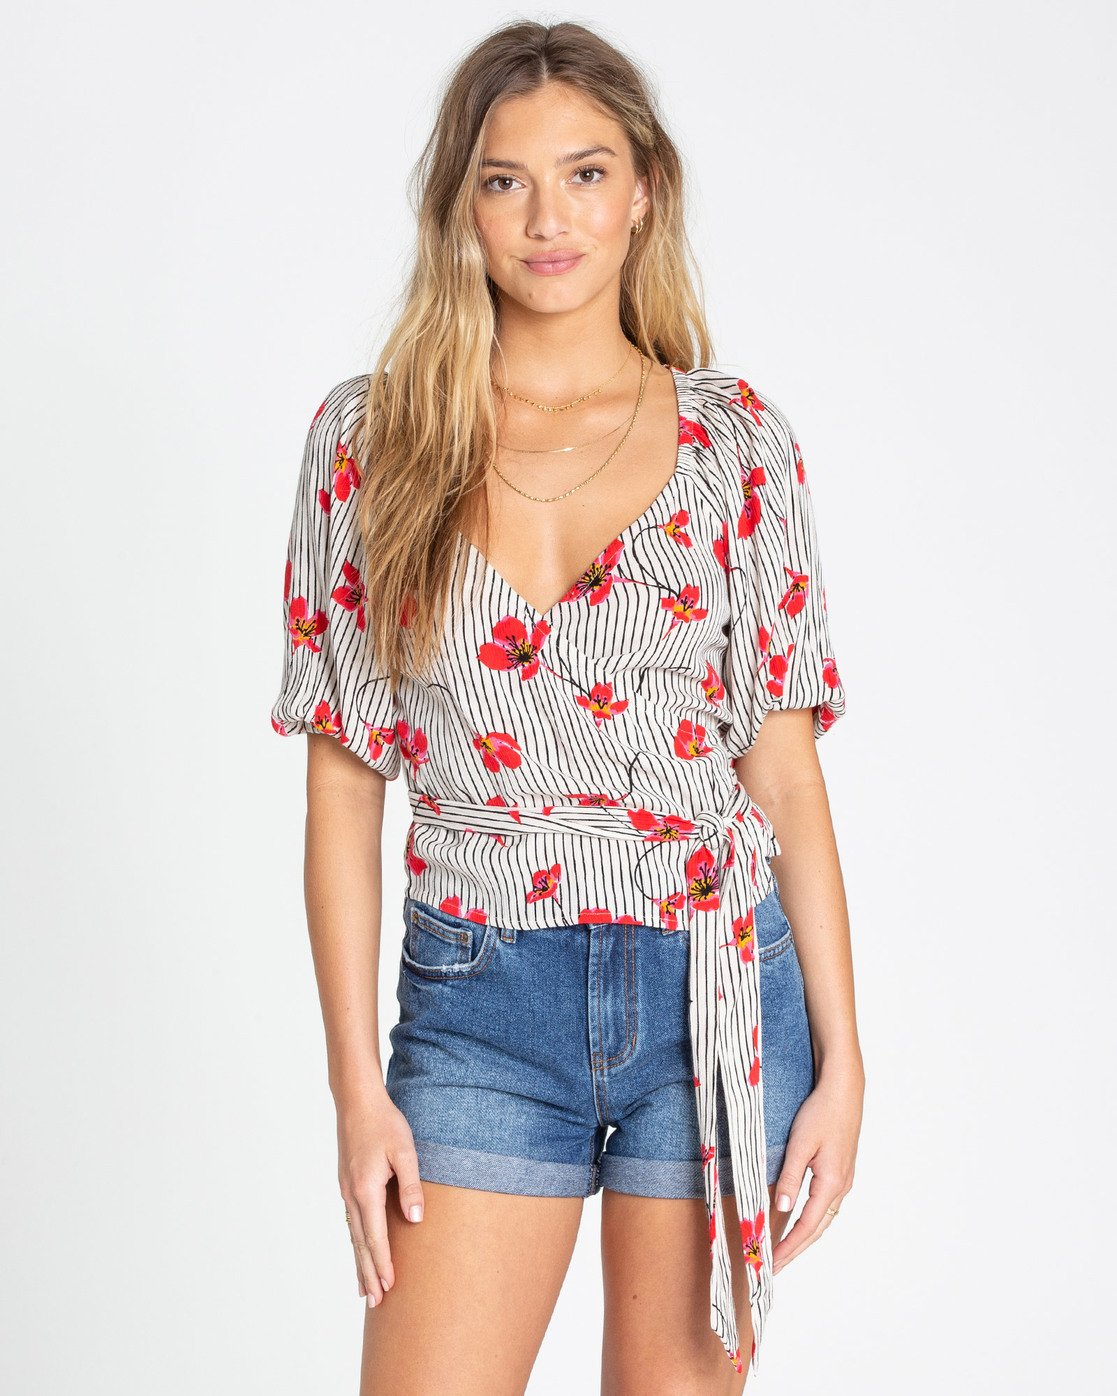 New Lust Wrap Top